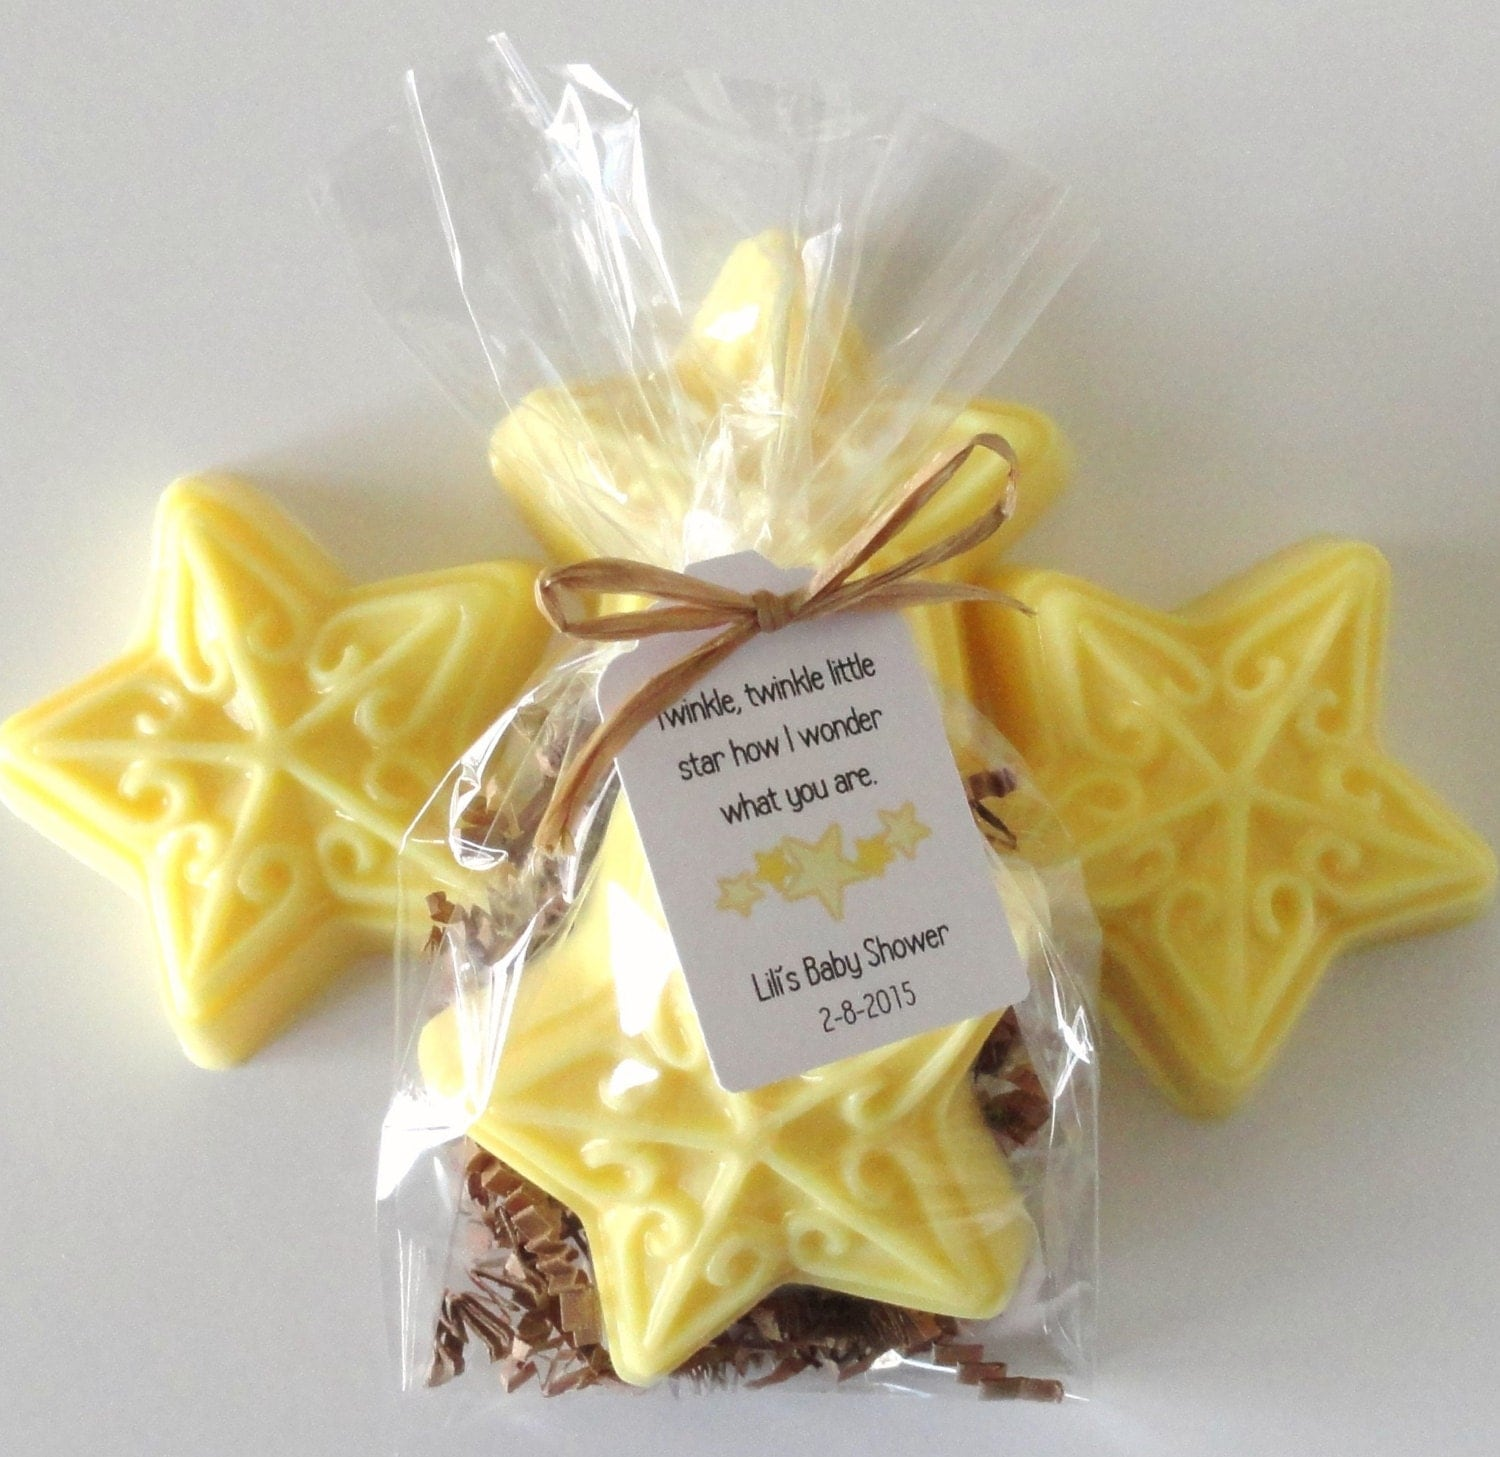 Star Soap Baby Shower Favors With Custom Tags By